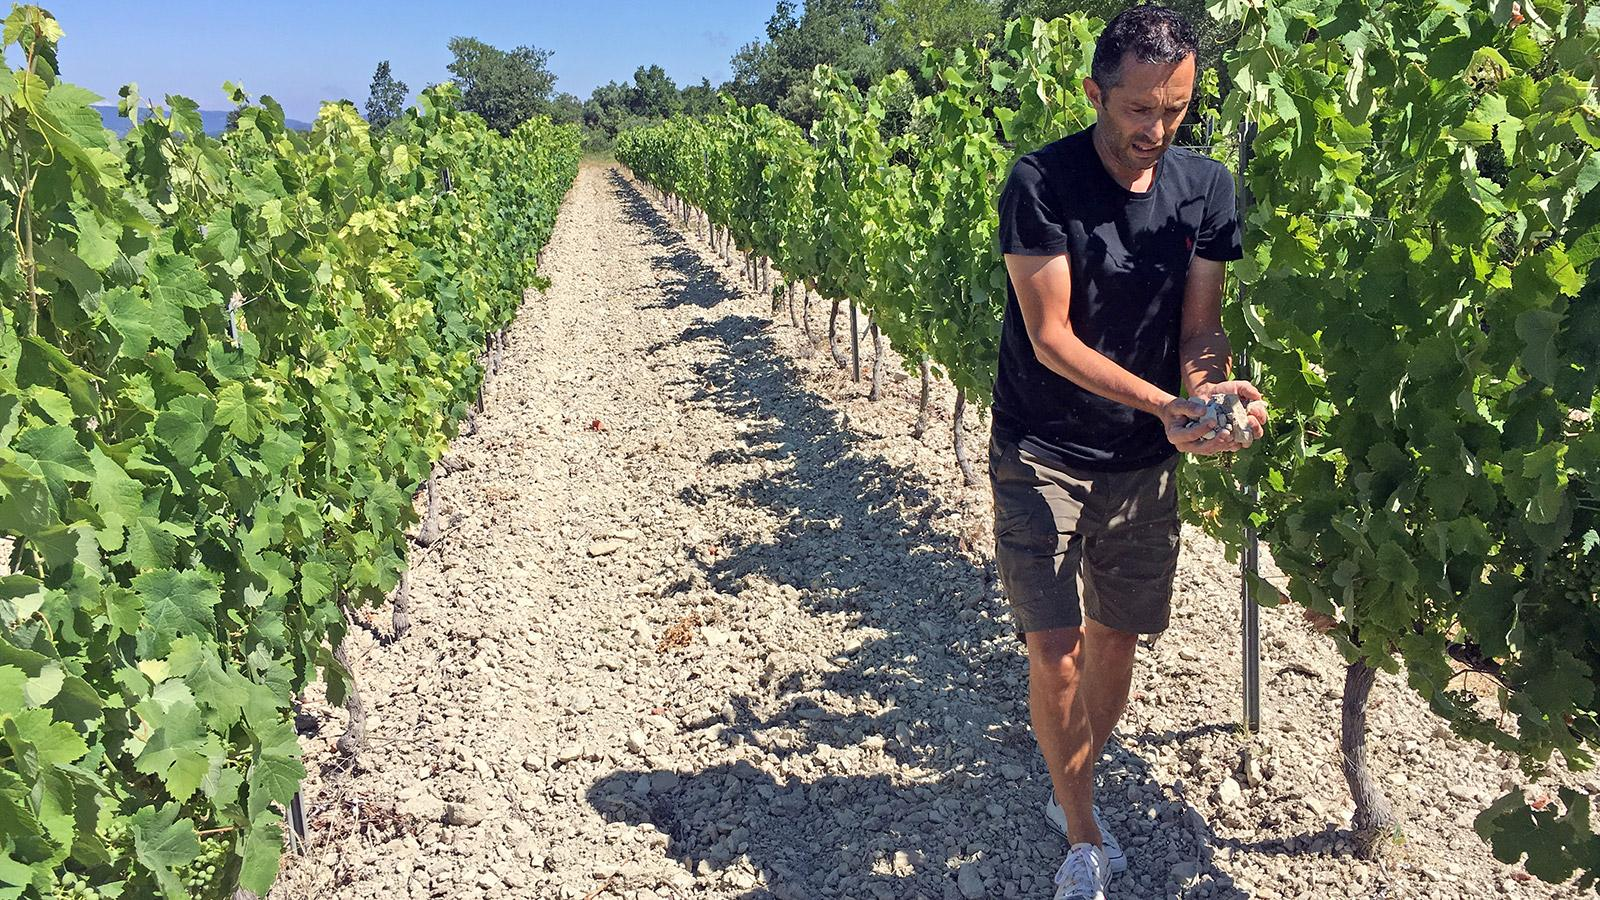 Sébastien Vincenti aims to highlight Ventoux's distinct areas and soils, such as the chalky hills where he grows white varieties.